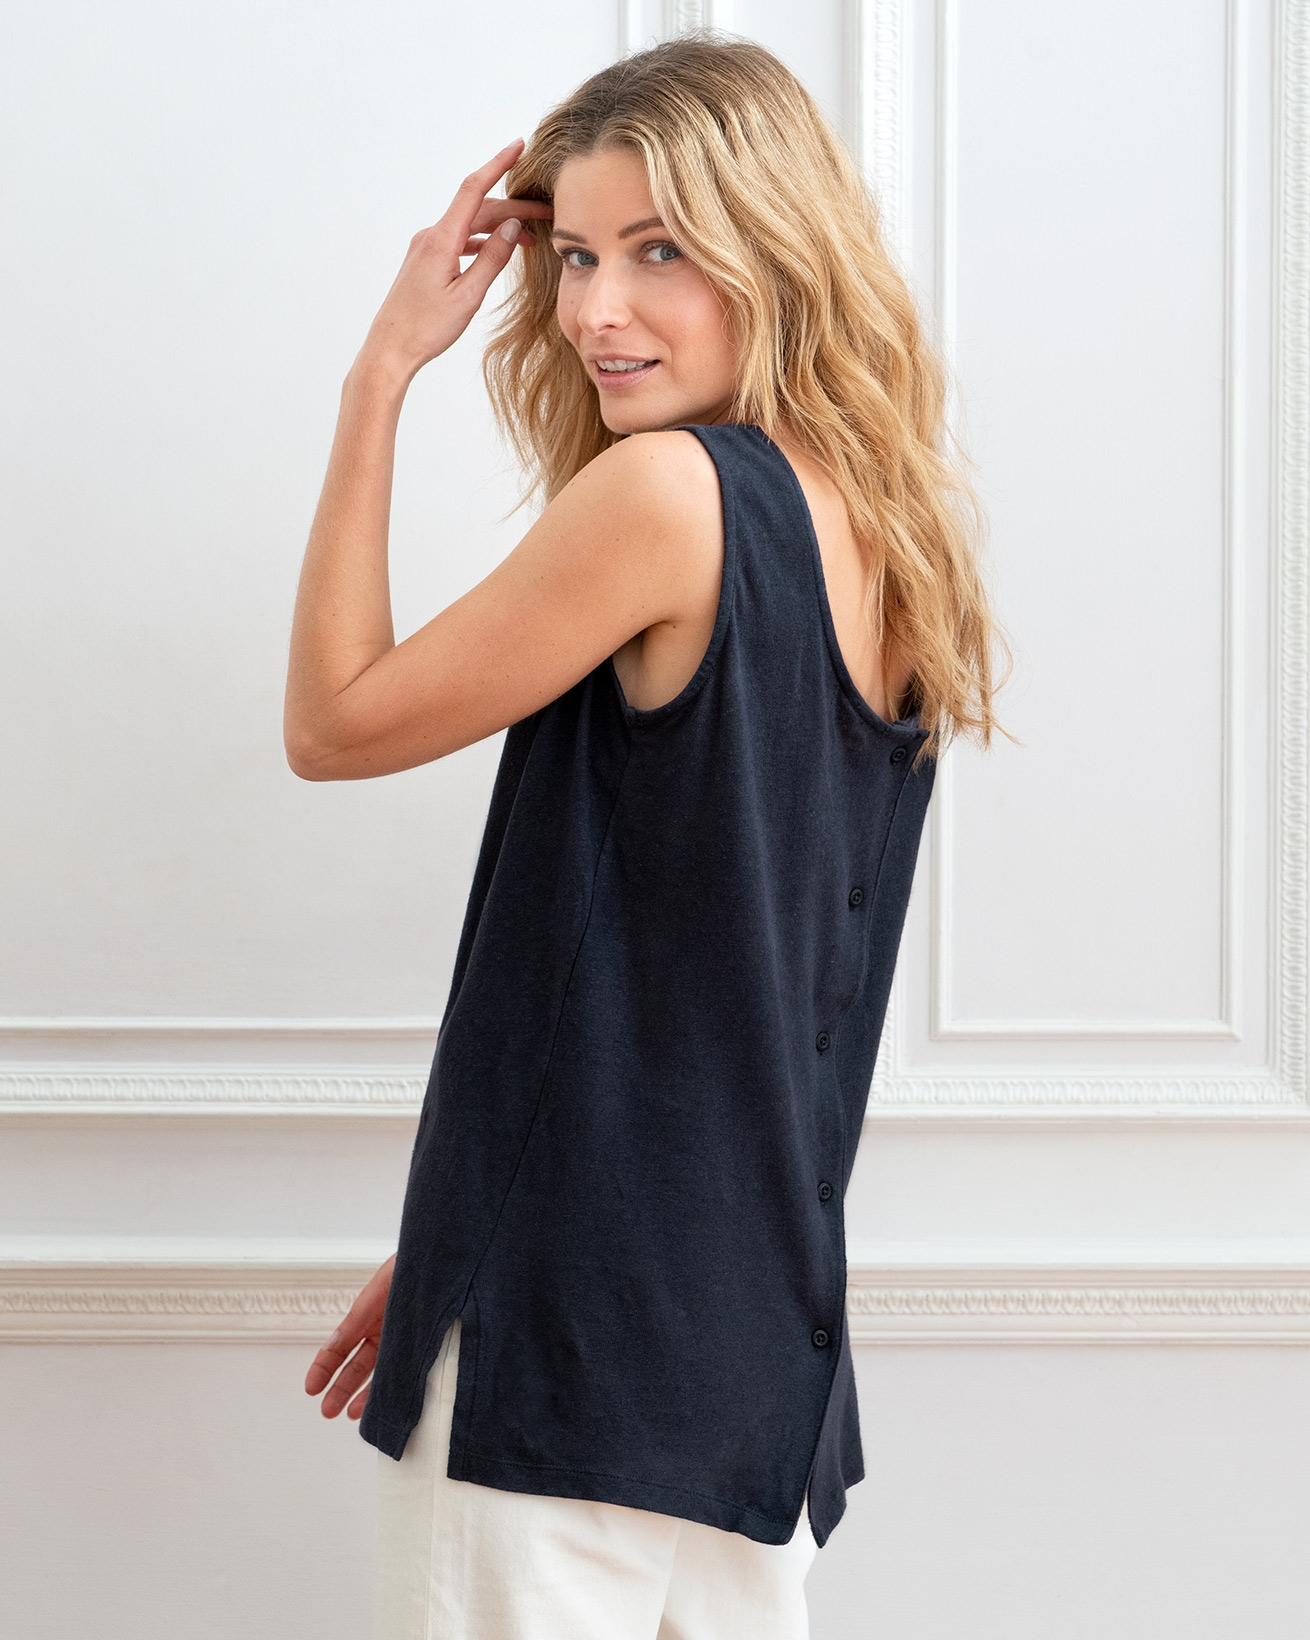 7785-linen-cotton-scoop-neck-tunic-navy-32web.jpg